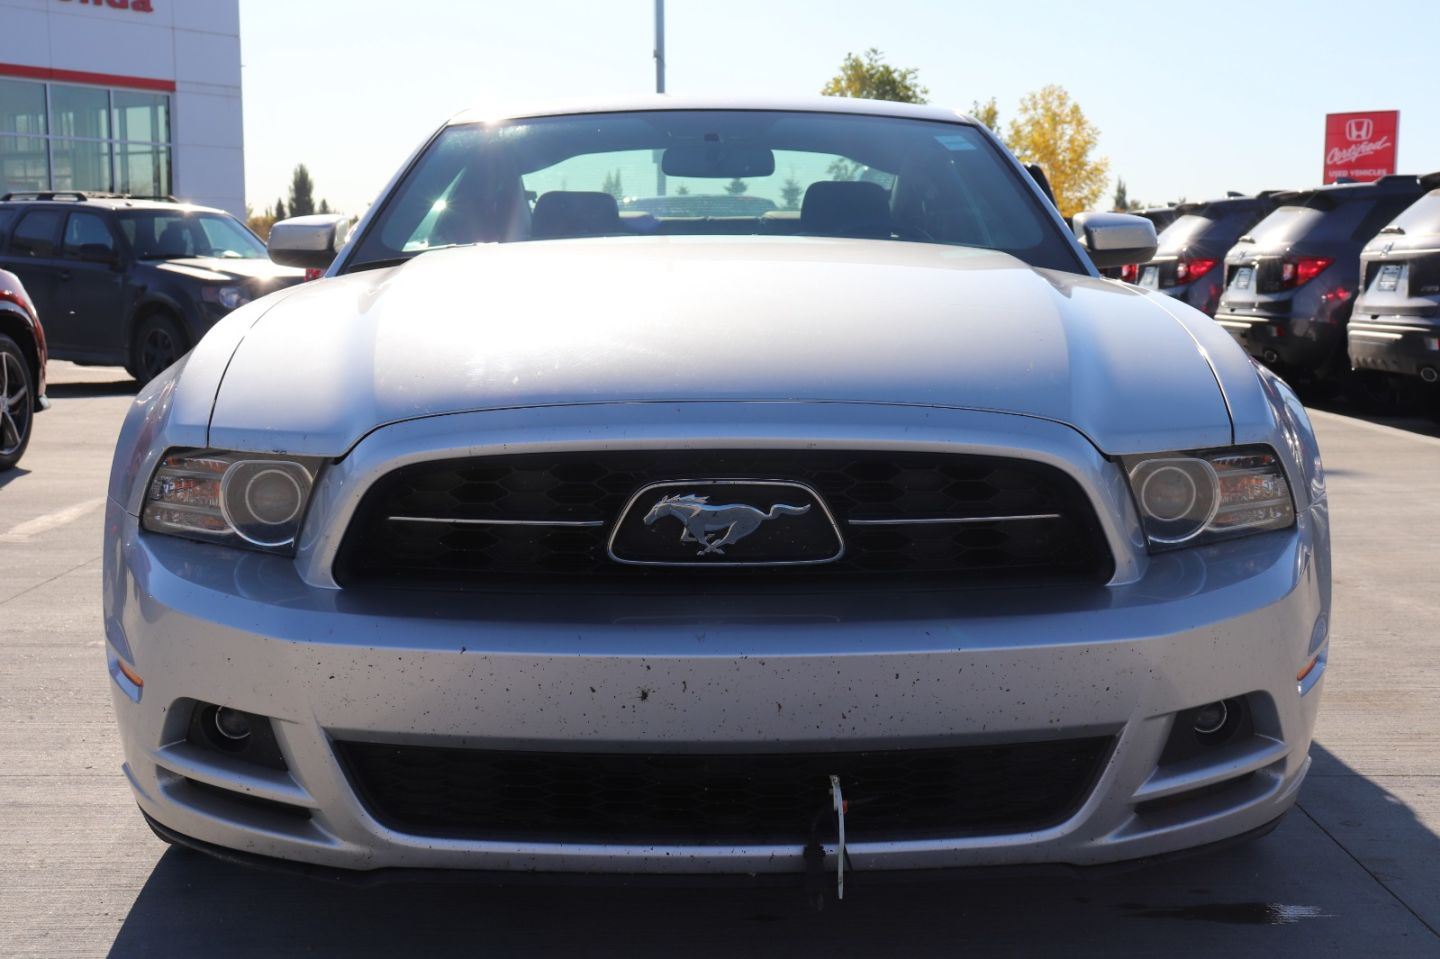 2013 Ford Mustang V6 for sale in St. Albert, Alberta